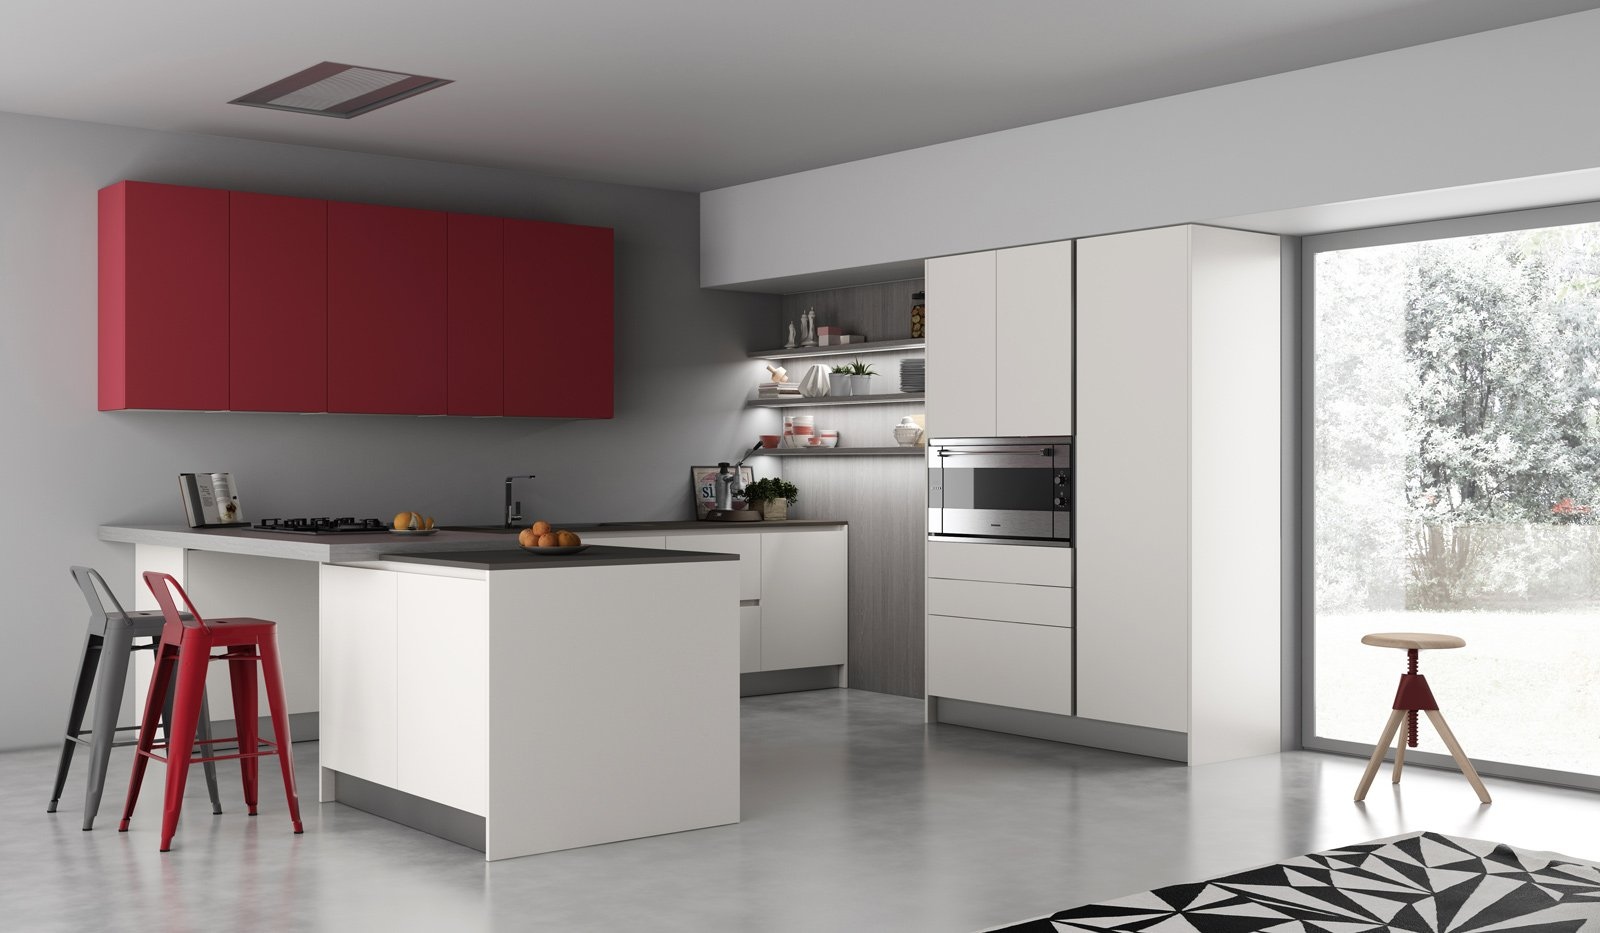 Doimo Cucine Pictures to pin on Pinterest